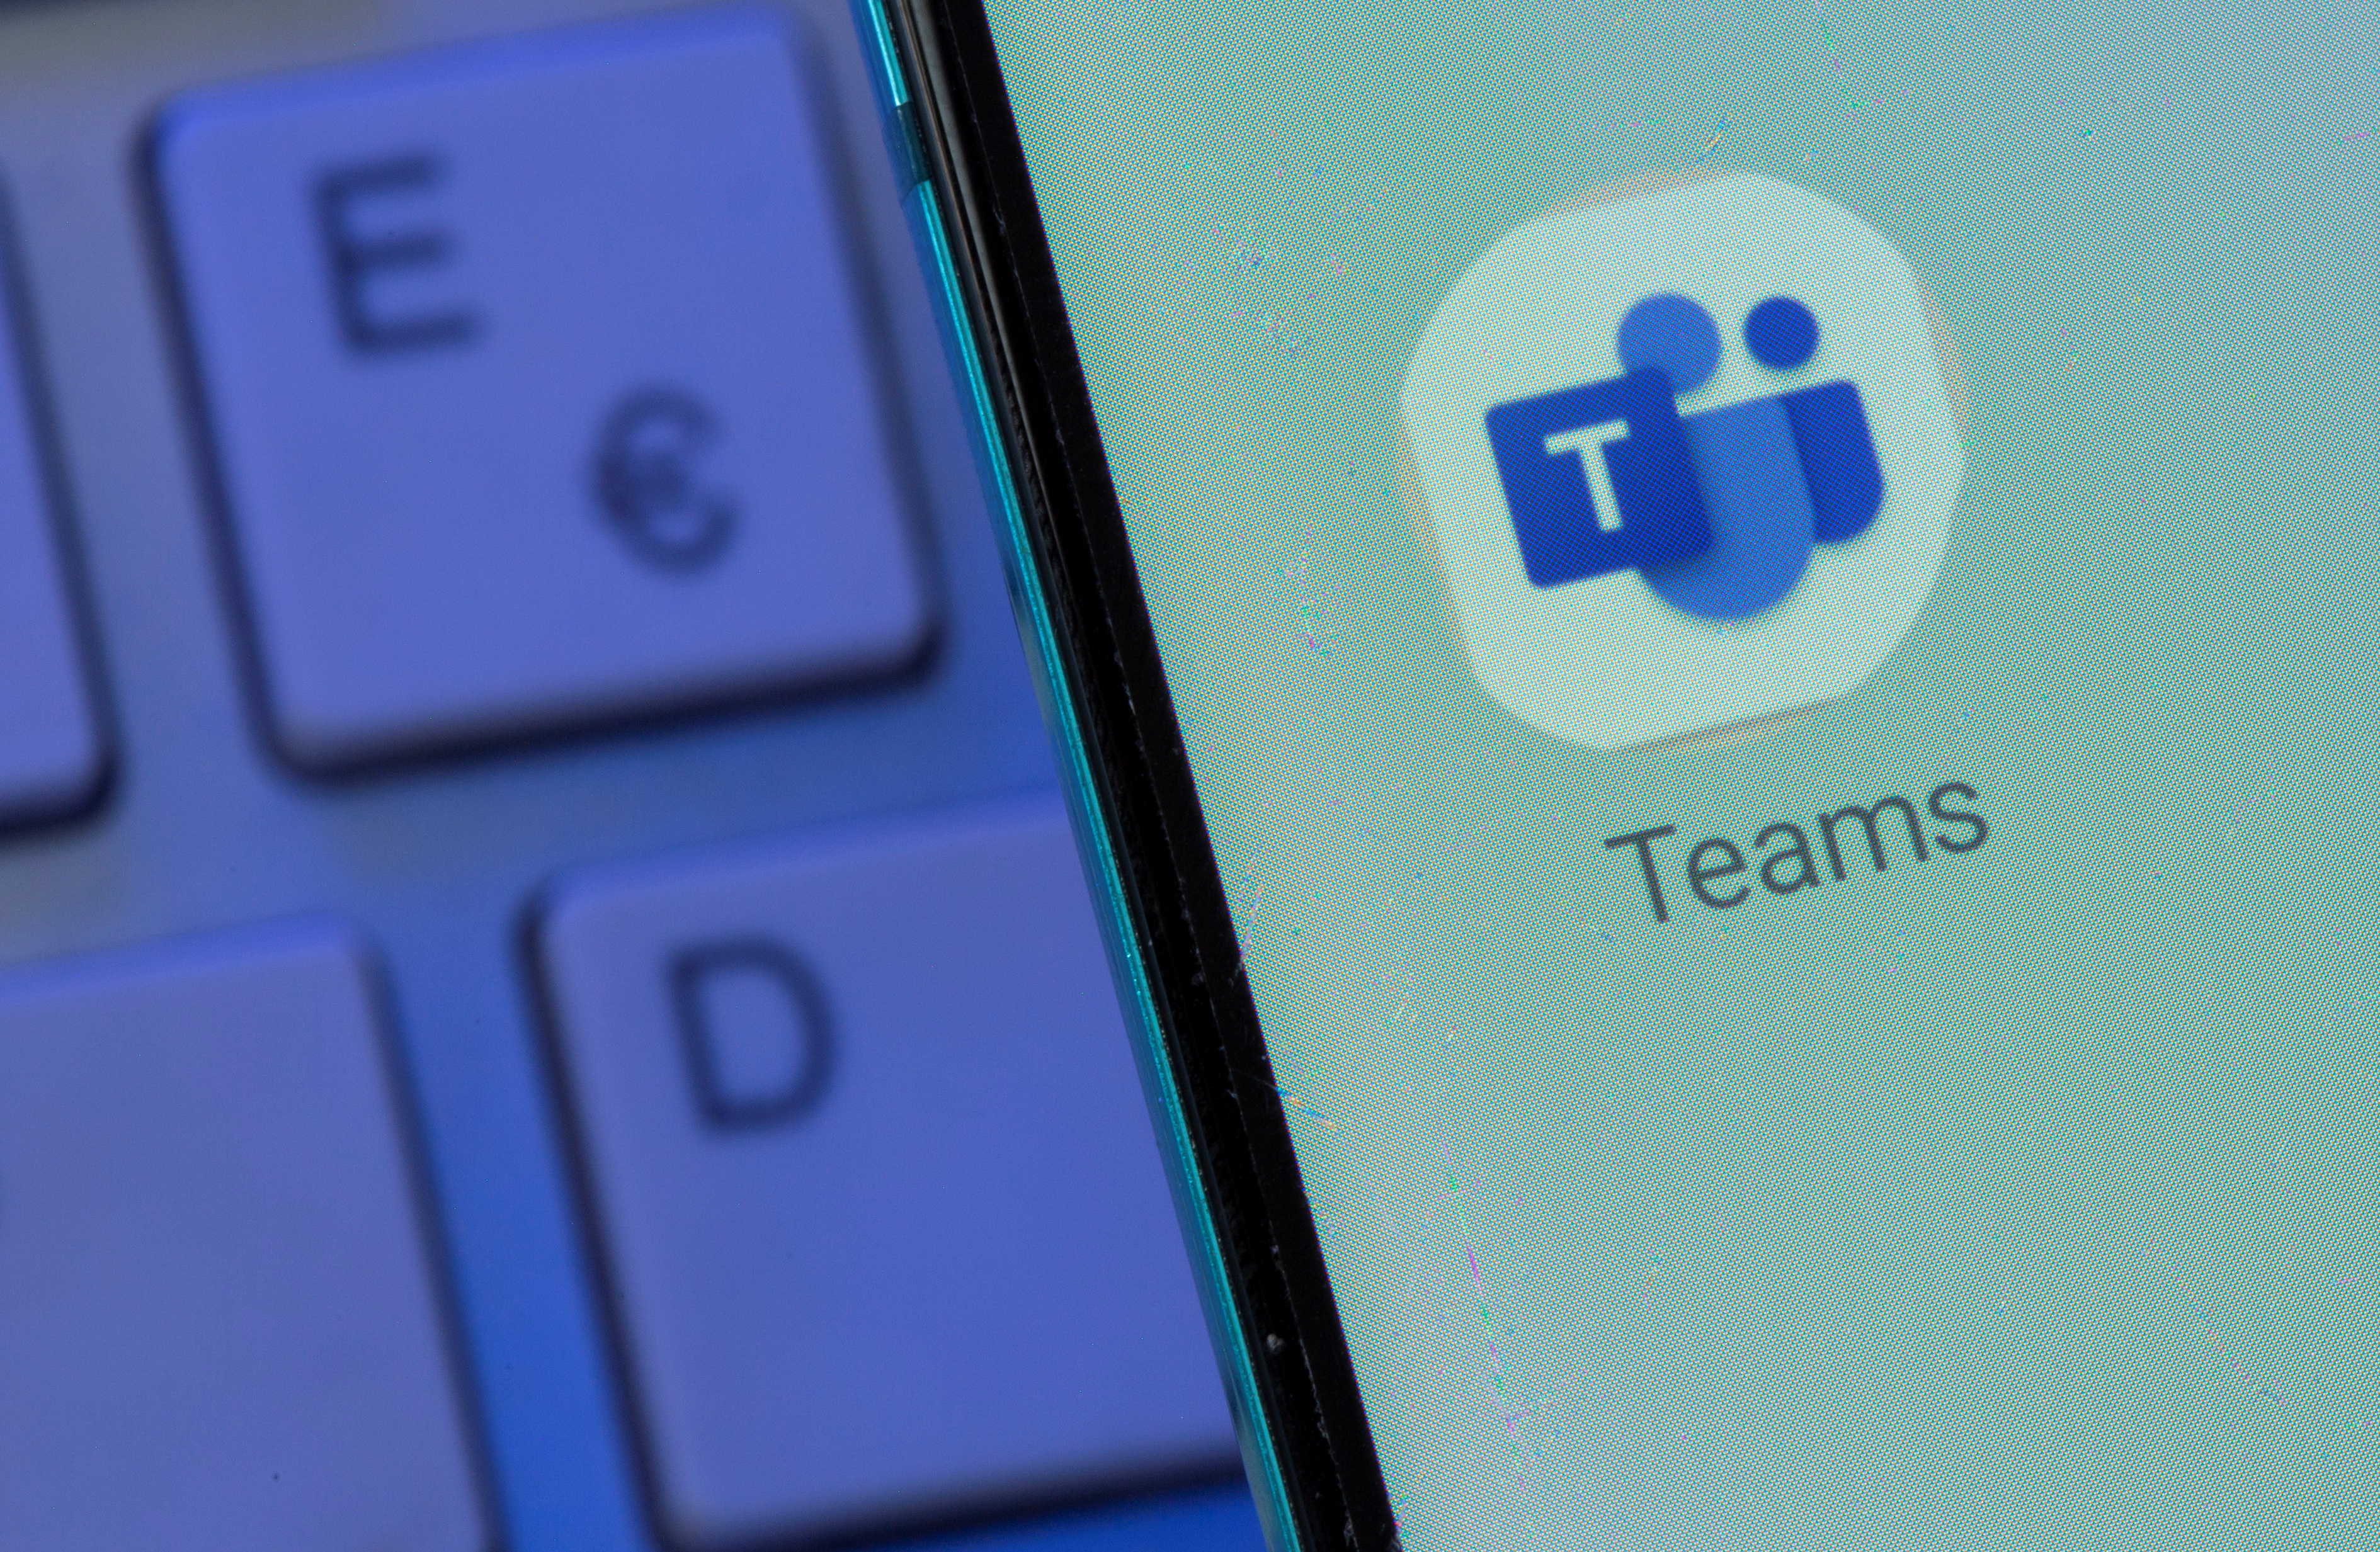 Microsoft Teams app is seen on the smartphone placed on the keyboard in this illustration taken, July 26, 2021. REUTERS/Dado Ruvic/